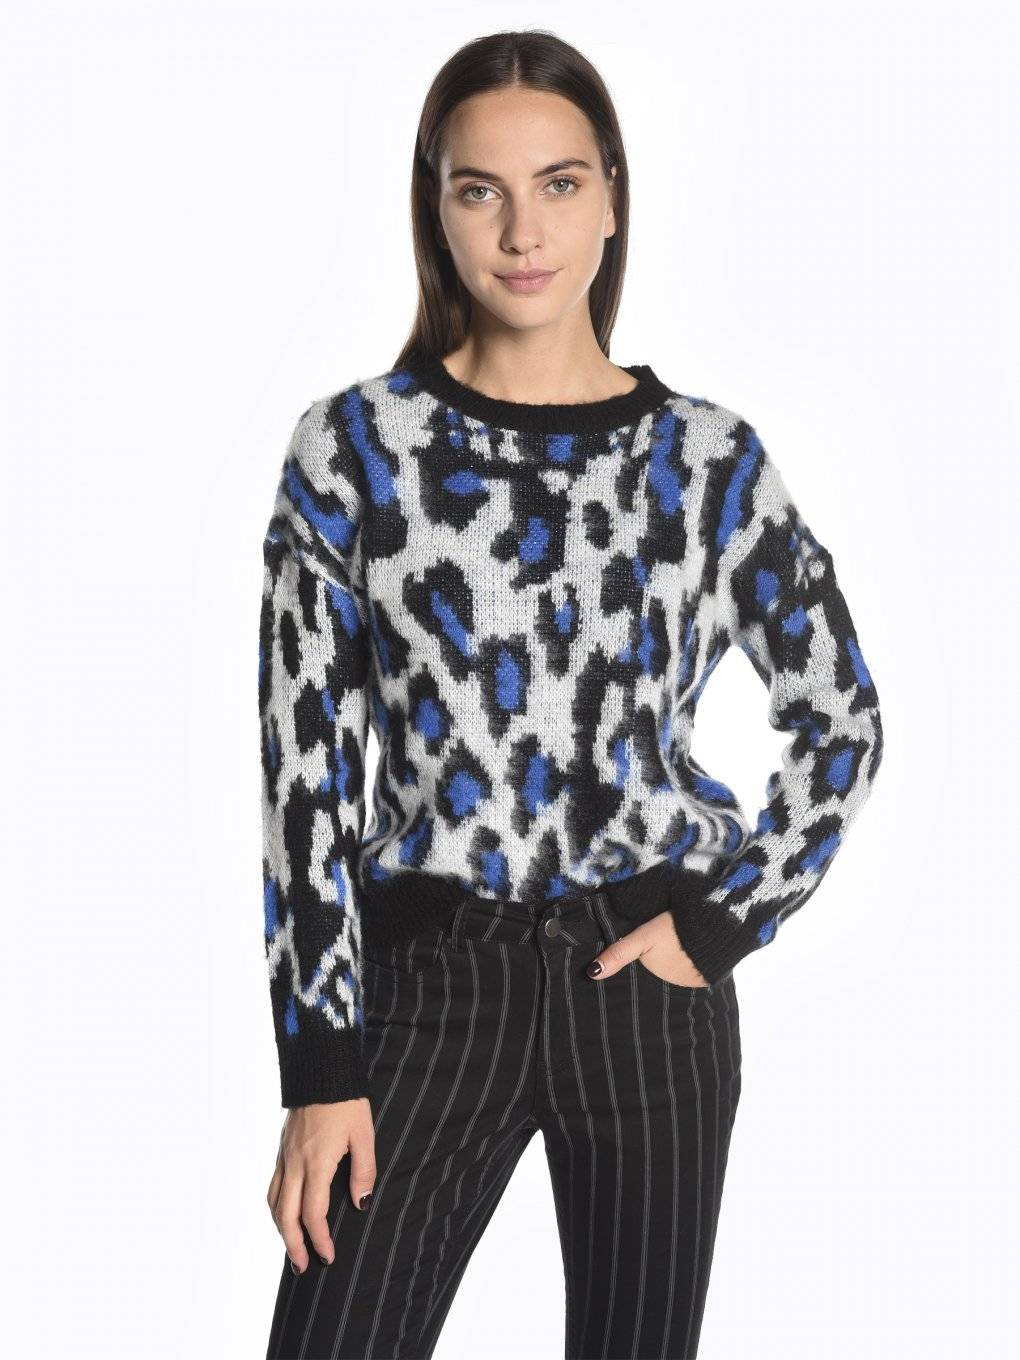 Animal pattern sweater